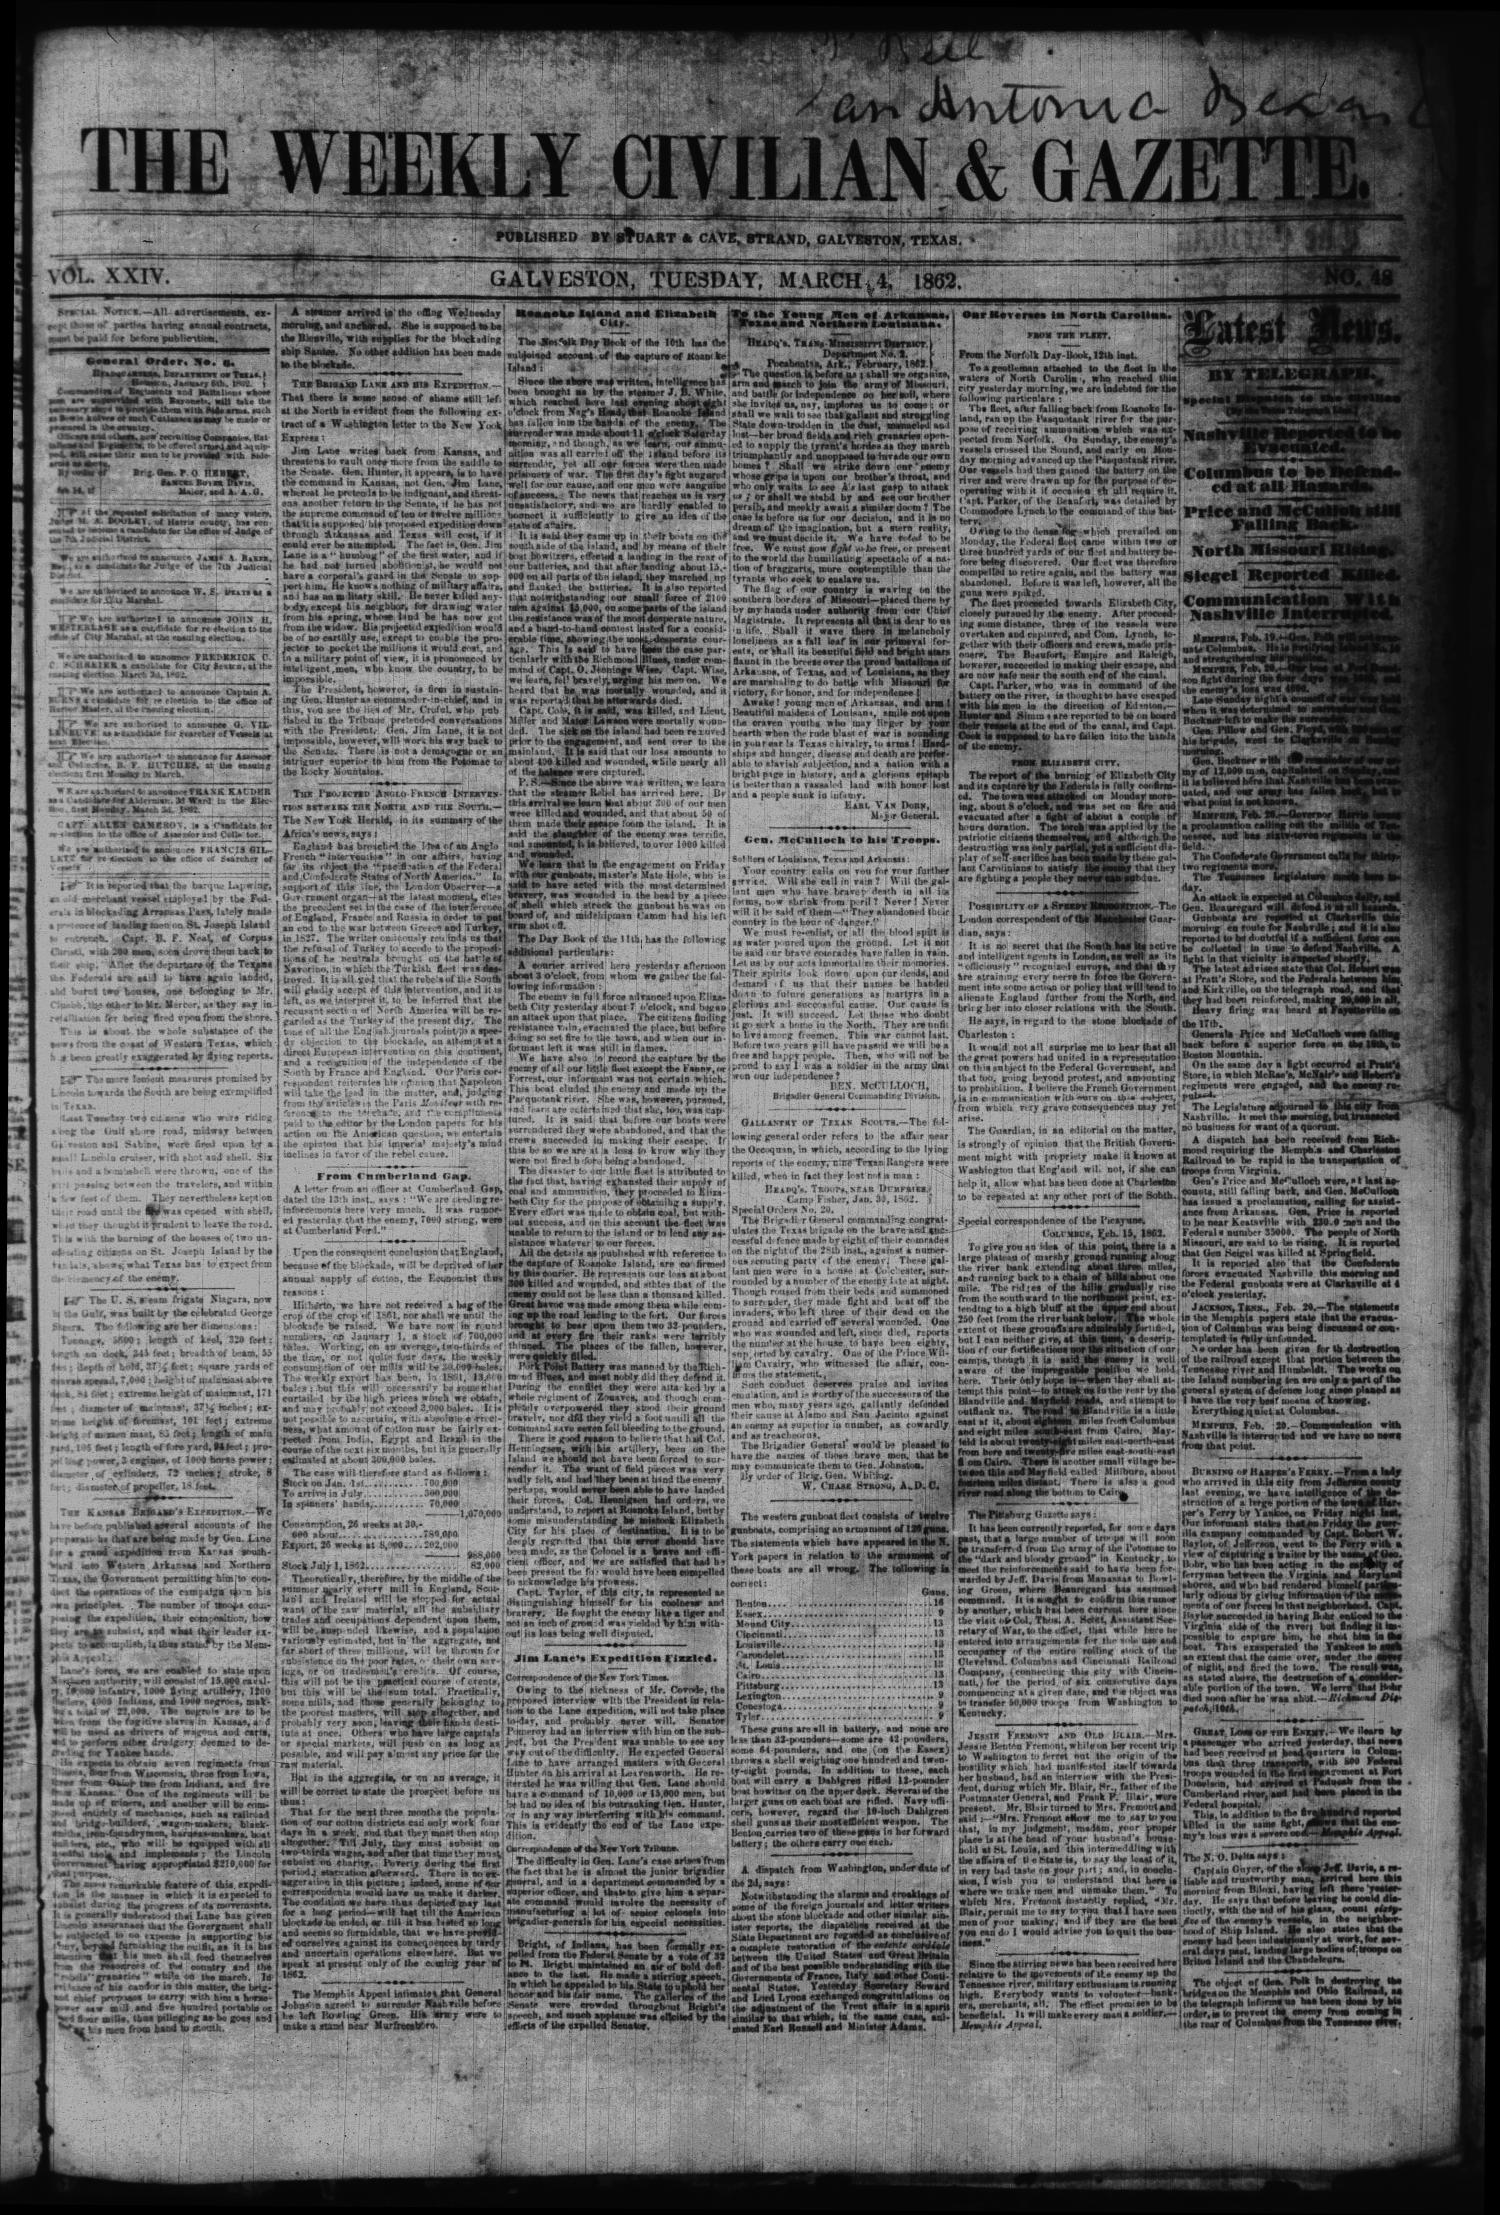 The Weekly Civilian & Gazette. (Galveston, Tex.), Vol. 24, No. 48, Ed. 1 Tuesday, March 4, 1862                                                                                                      [Sequence #]: 1 of 4